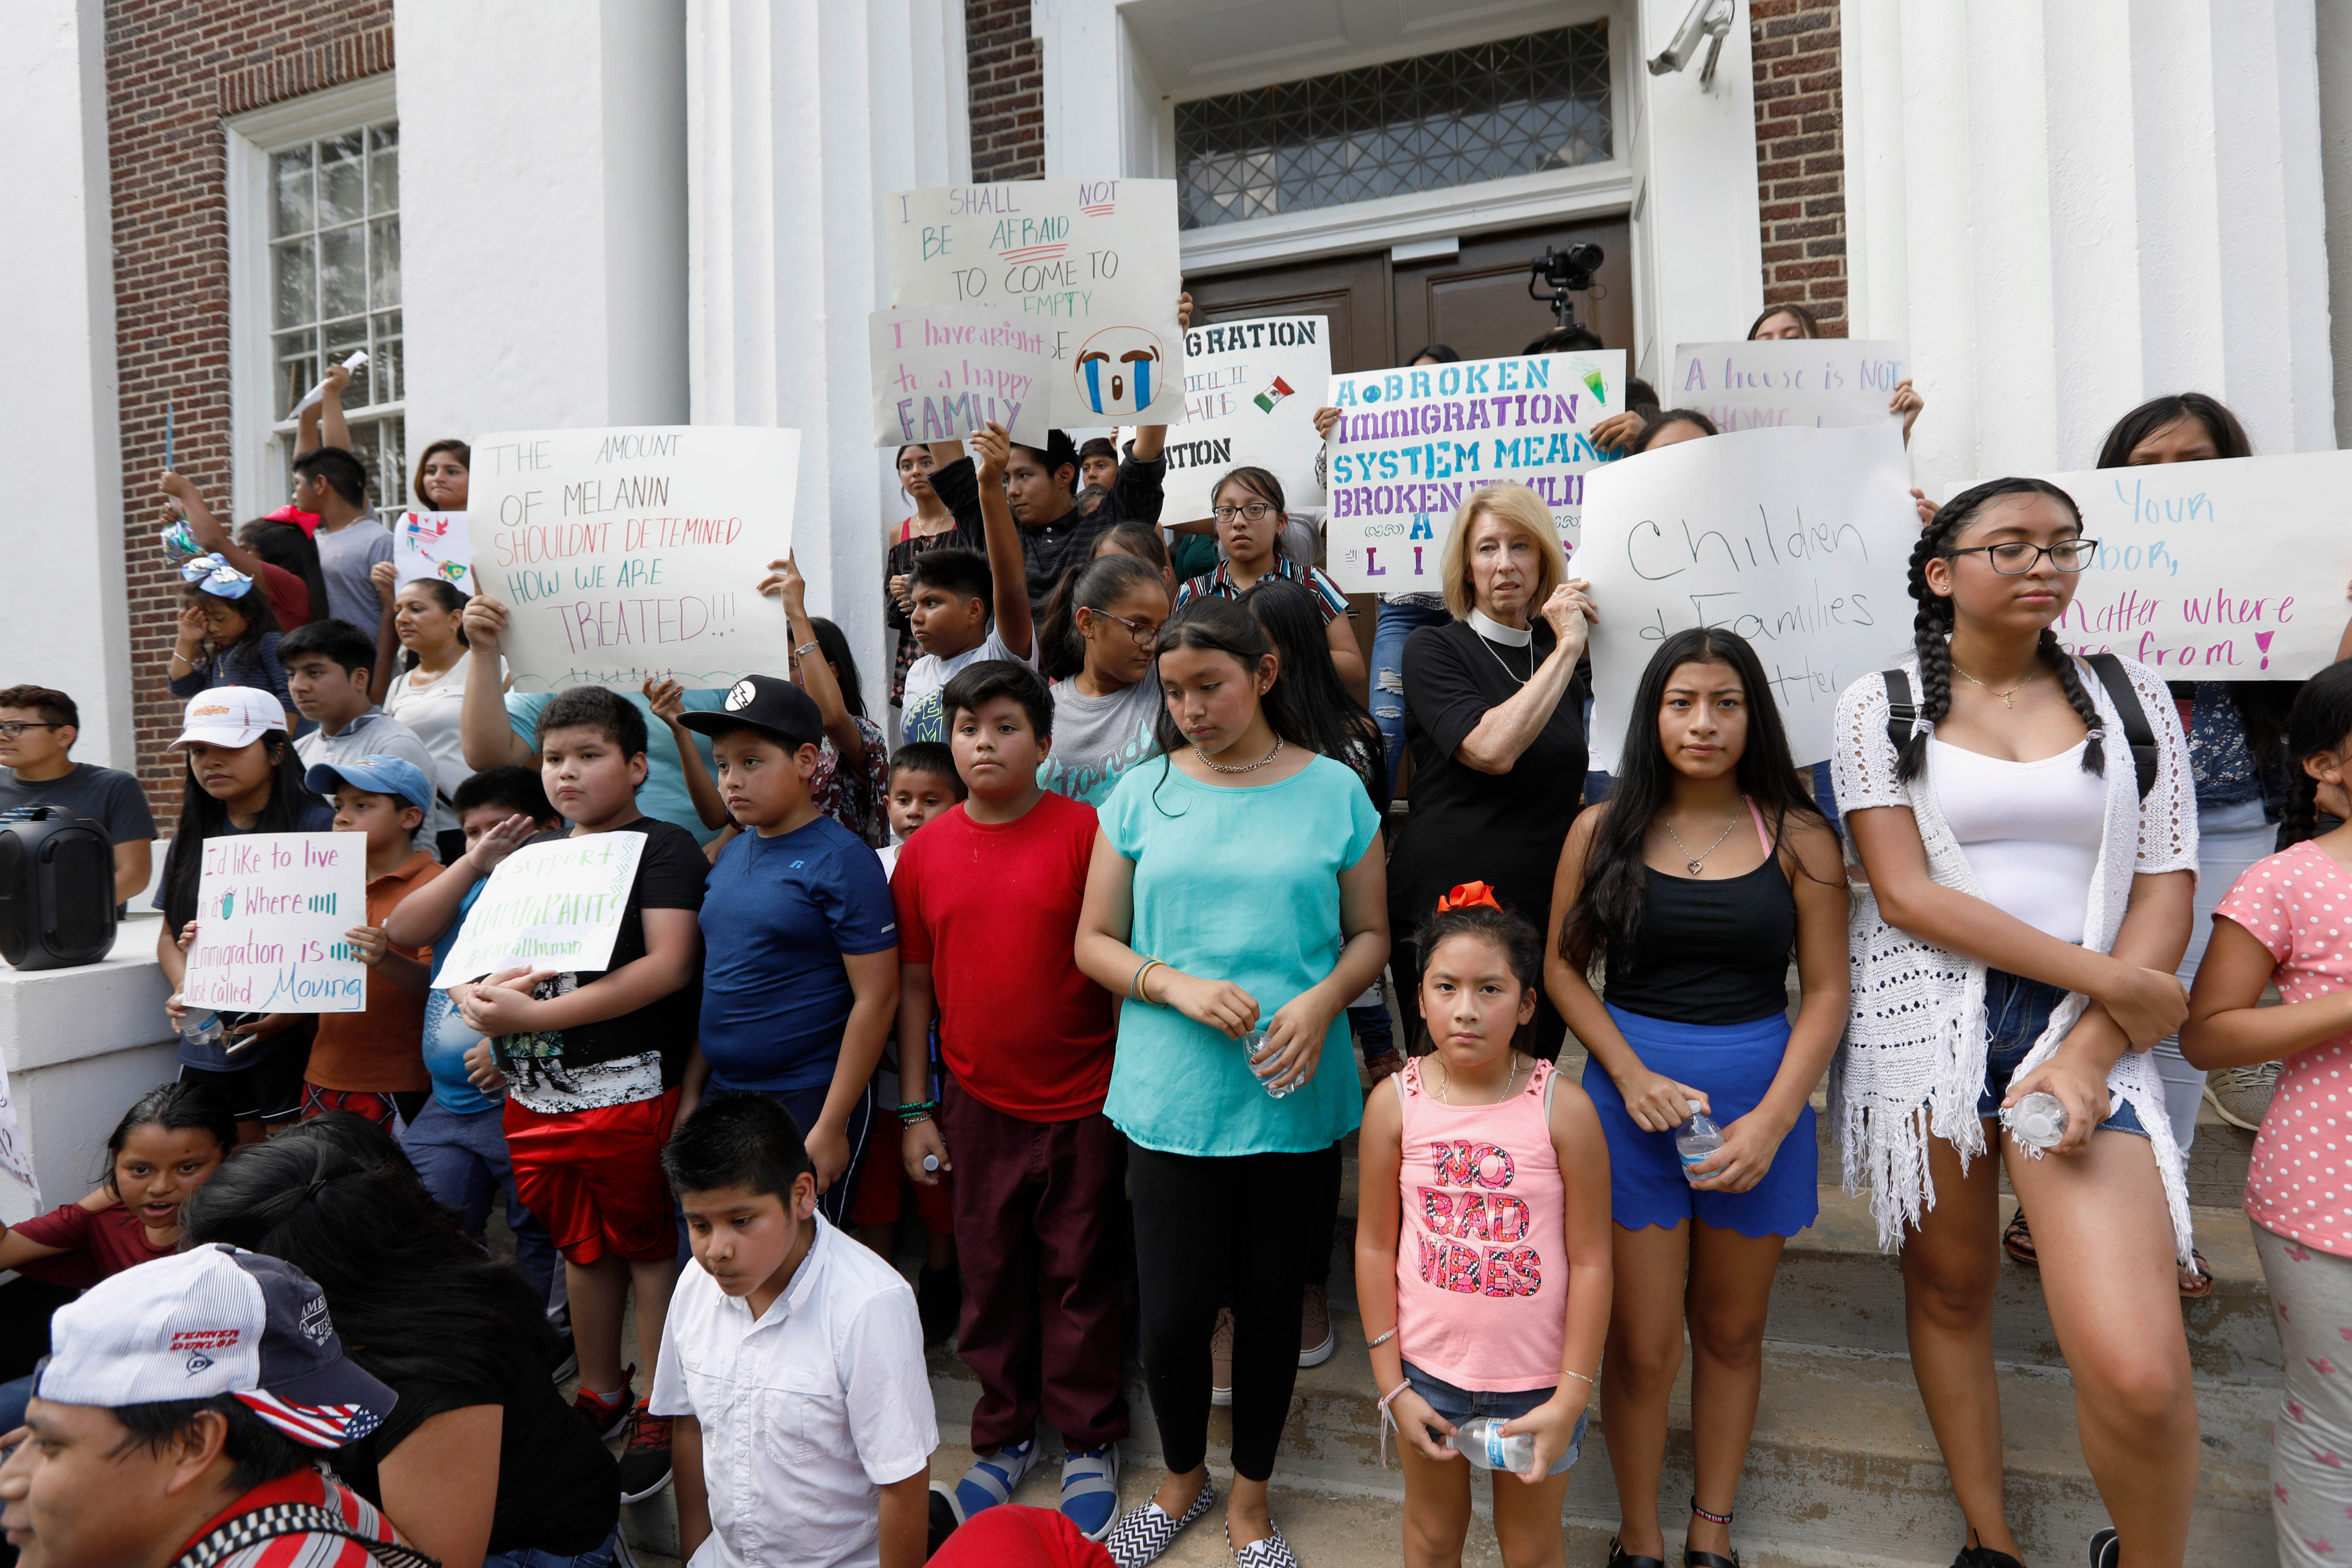 Children of mainly Latino immigrant parents hold signs in support of them and those individuals picked up during an immigration raid at chicken processing plants at the Madison County Courthouse in Canton, Miss., on Aug. 11, 2019.